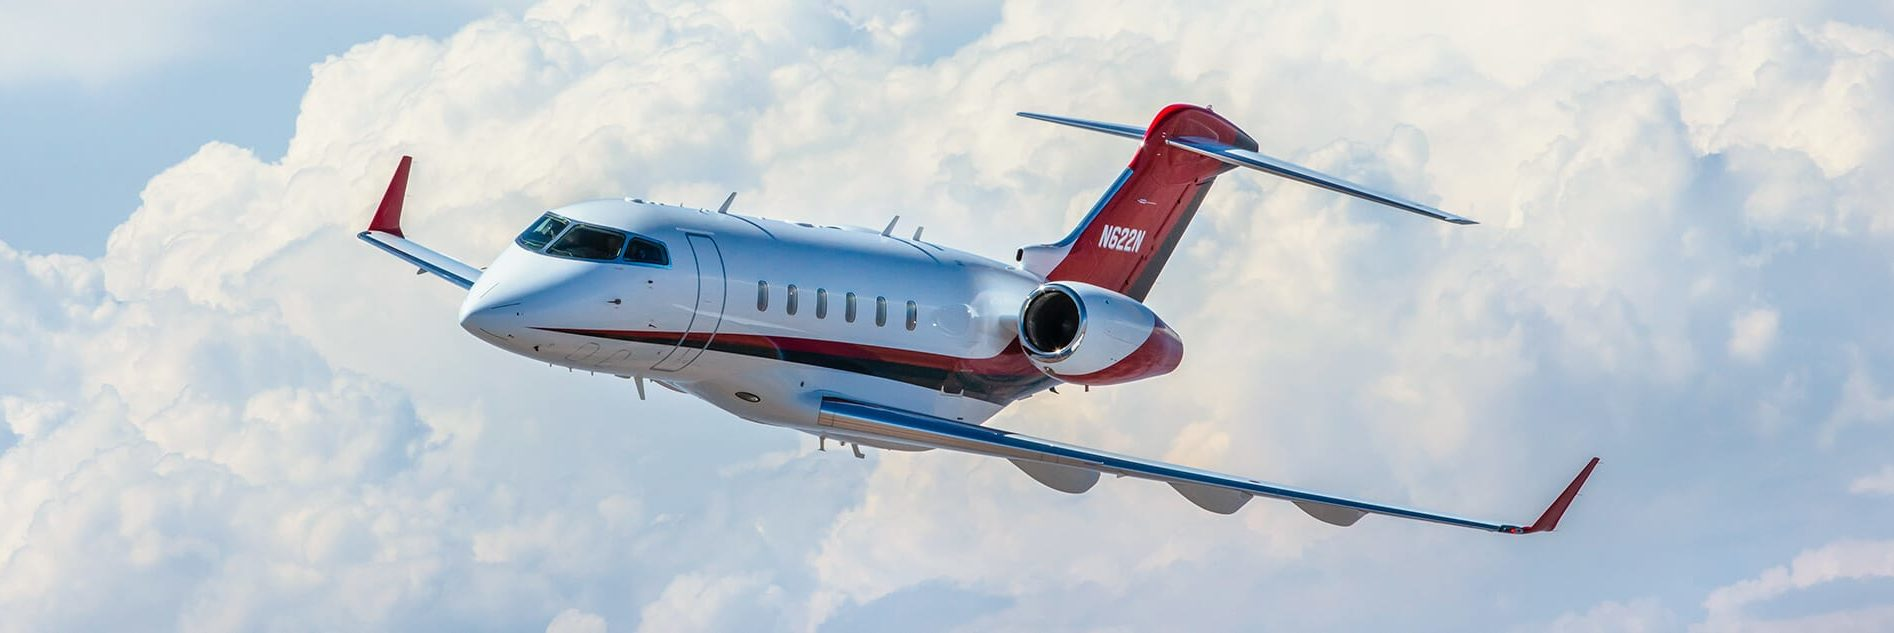 Challenger 300 Against Blue Sky and Clouds